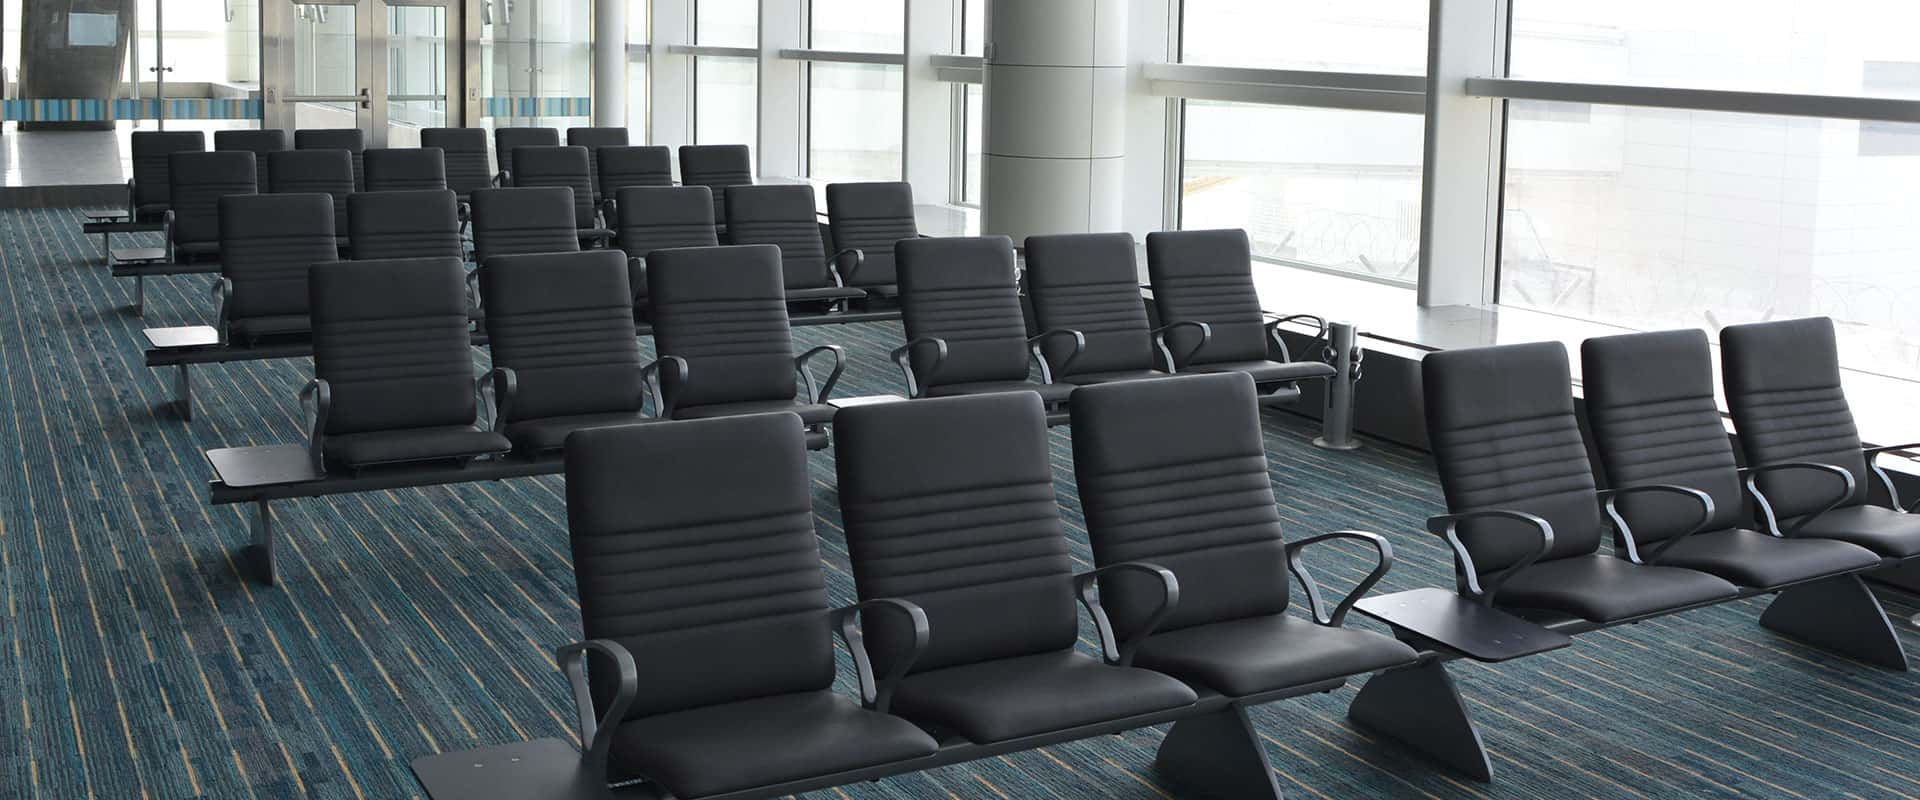 Connected waiting room chairs - Airport Furniture And Seating